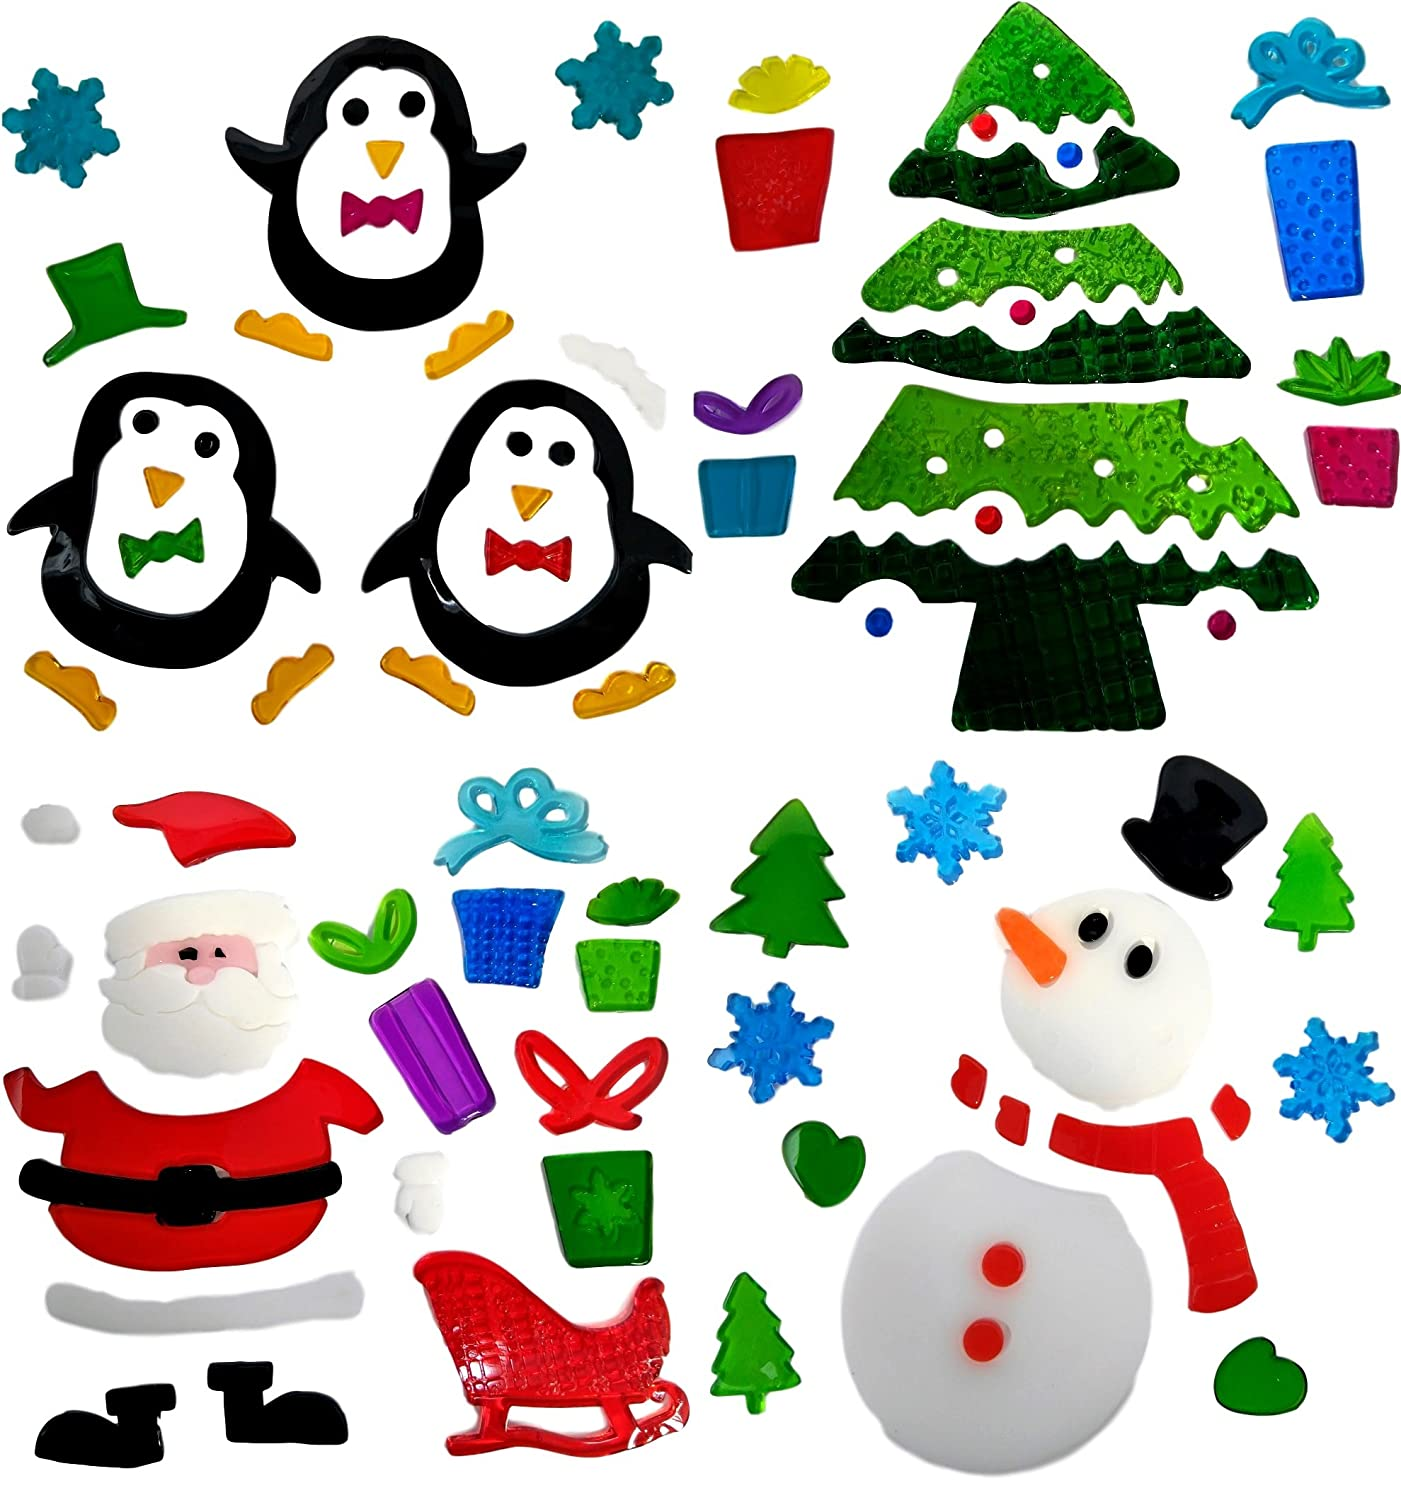 Atlona christmas window stickers 4 sheets christmas gel clings amazon co uk kitchen home